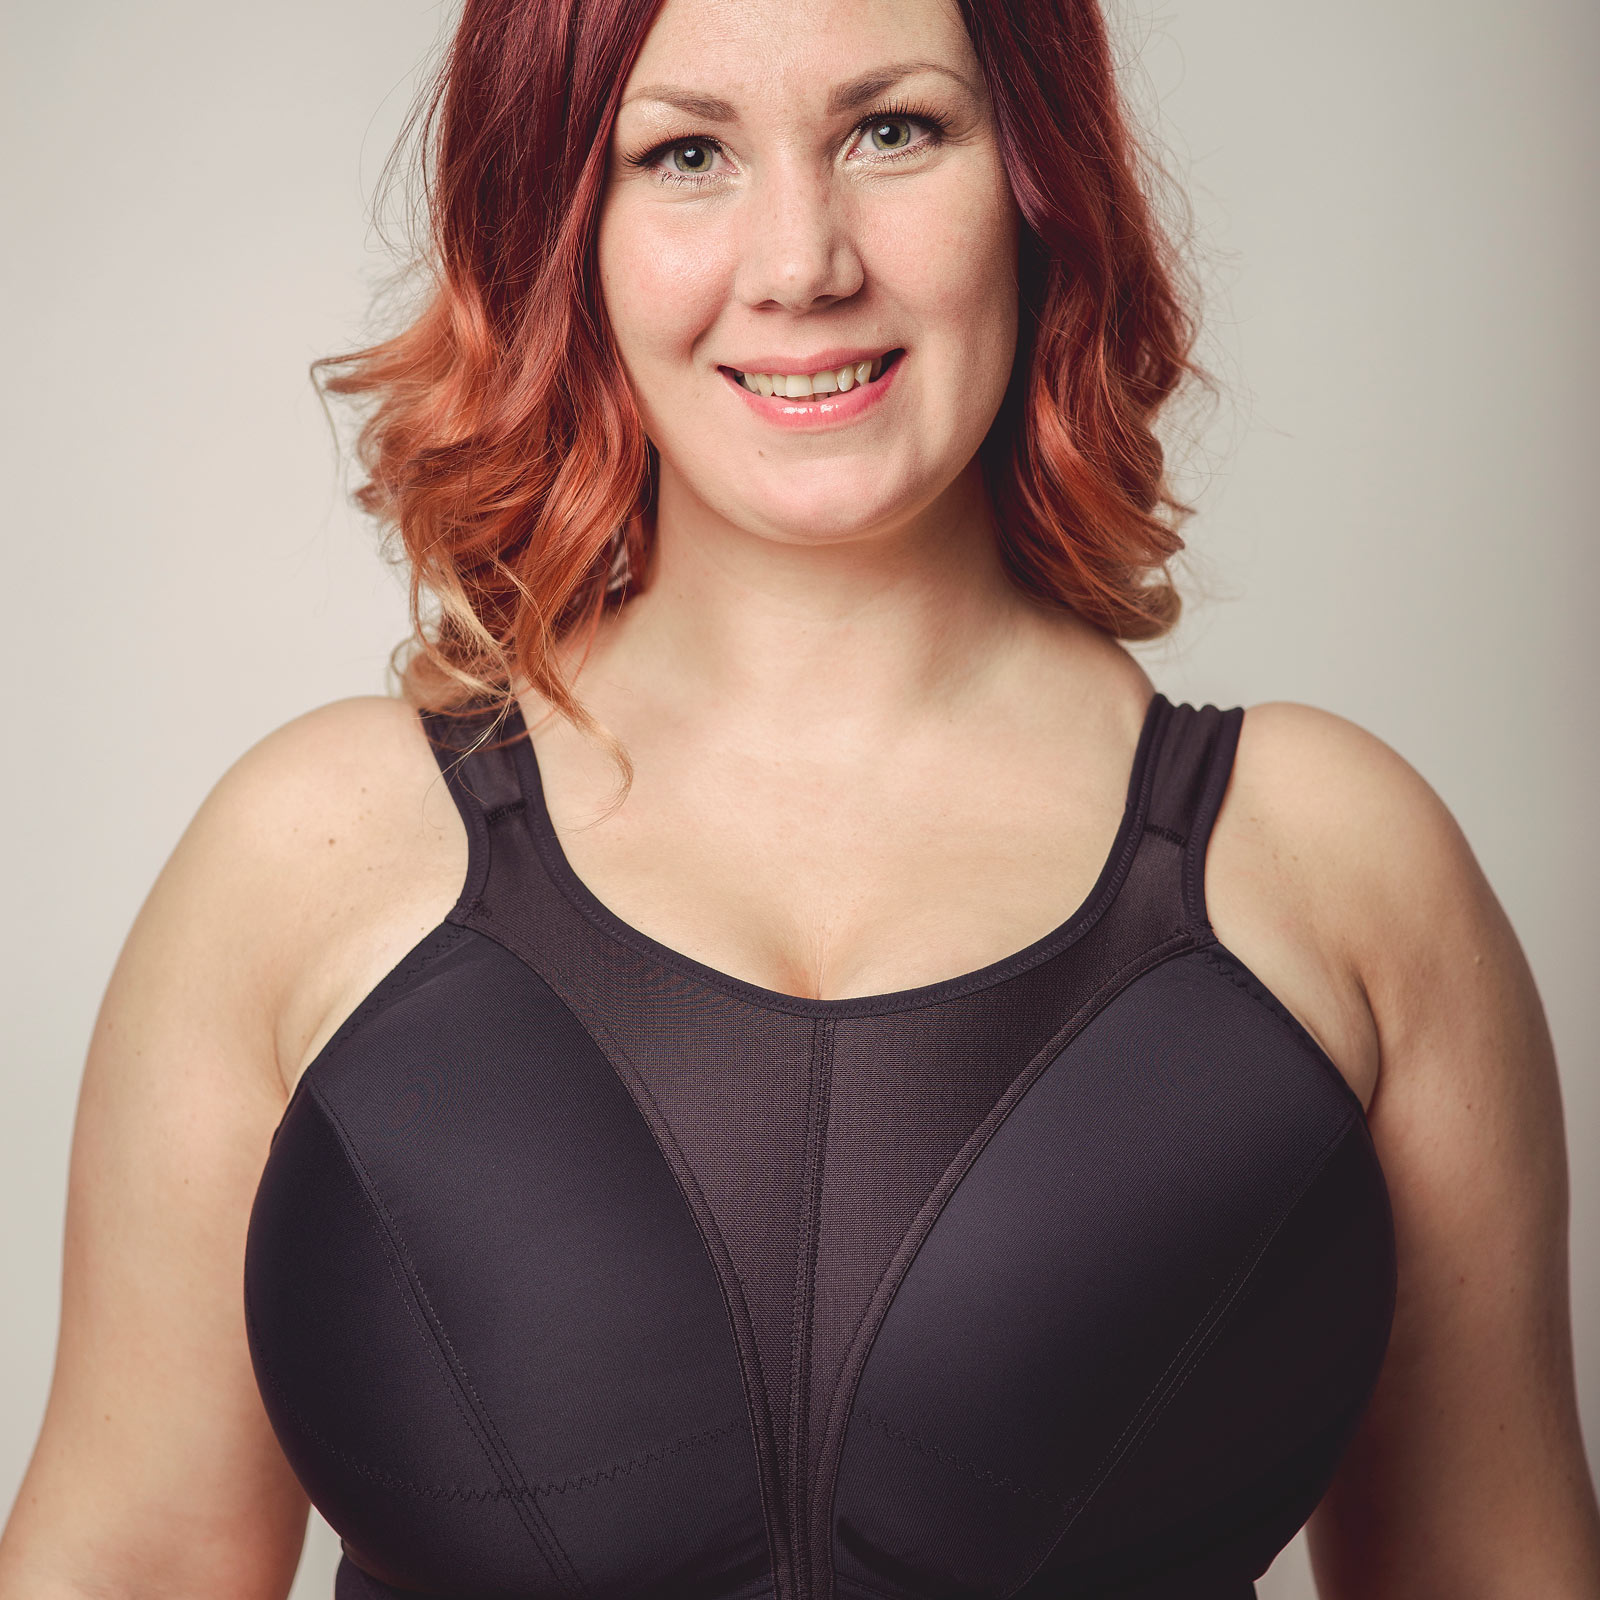 Sports Bras: Light, Medium & High Impact (35) Attack your workouts with confidence in a Nike sports bra. Featuring low, medium and high-impact fits along with a wide range of styles like adjustable and padded, women's sports bras are designed to meet the challenges .